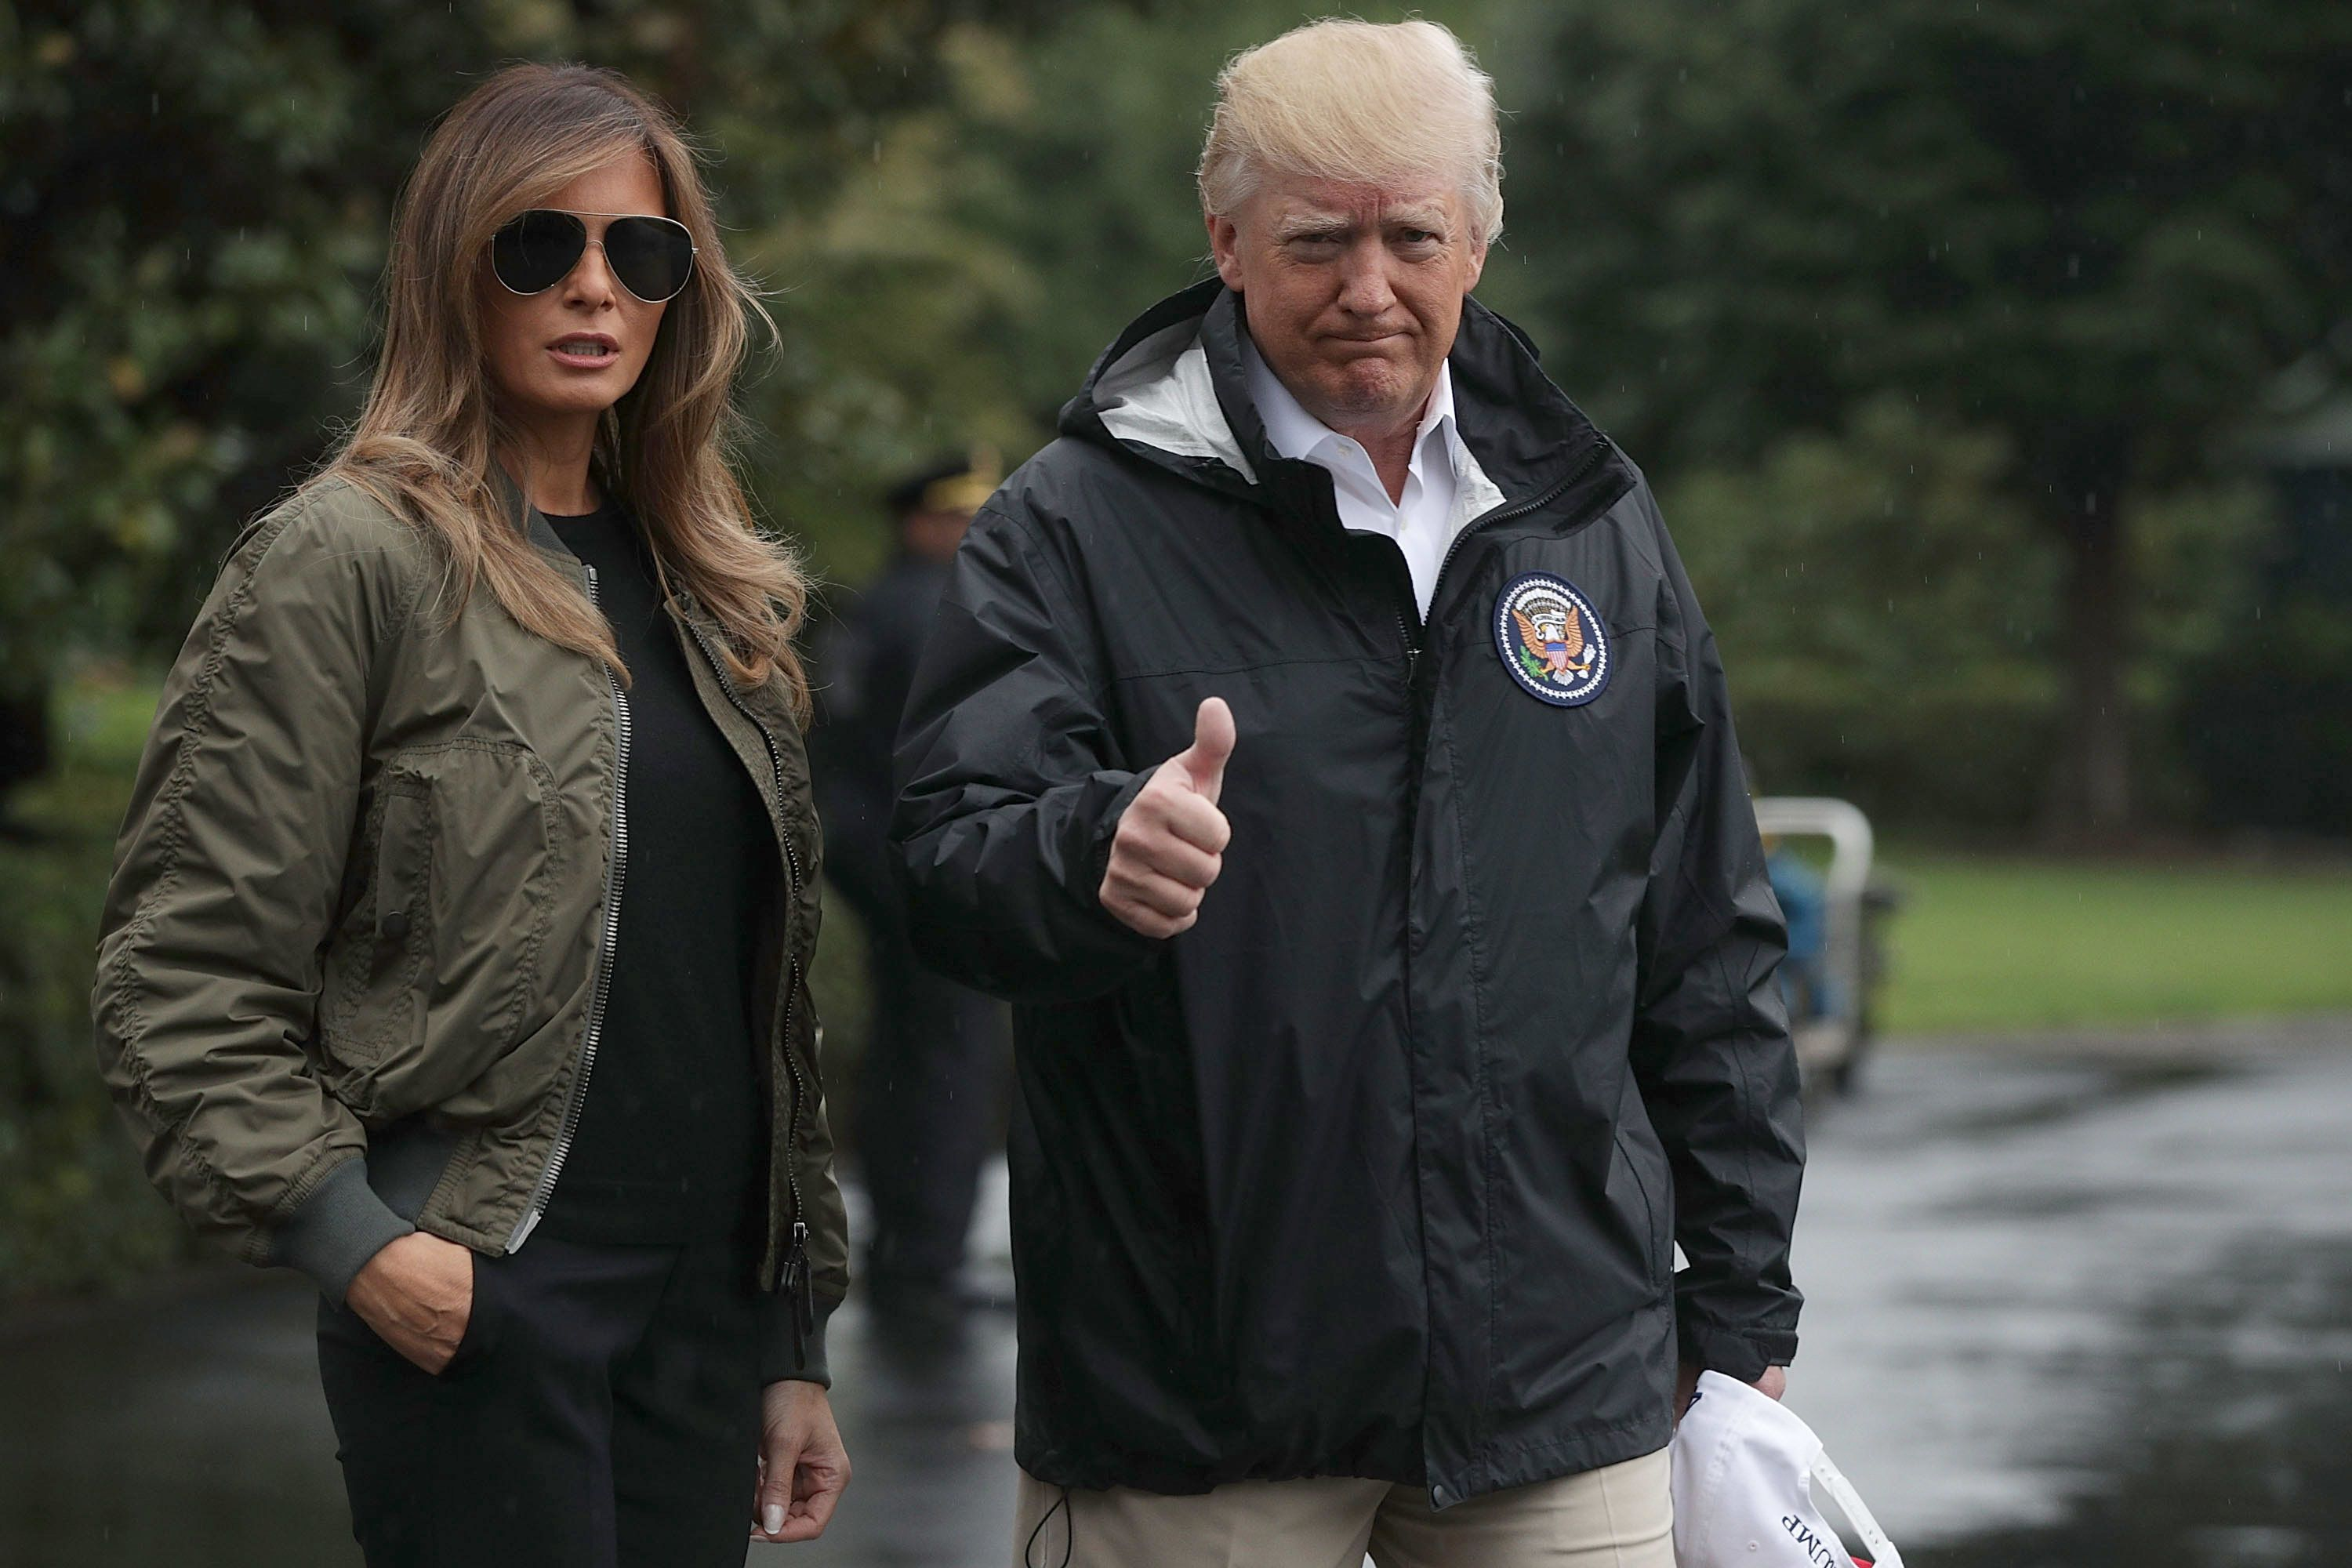 Trump Makes Devastating Hurricane All About Trump